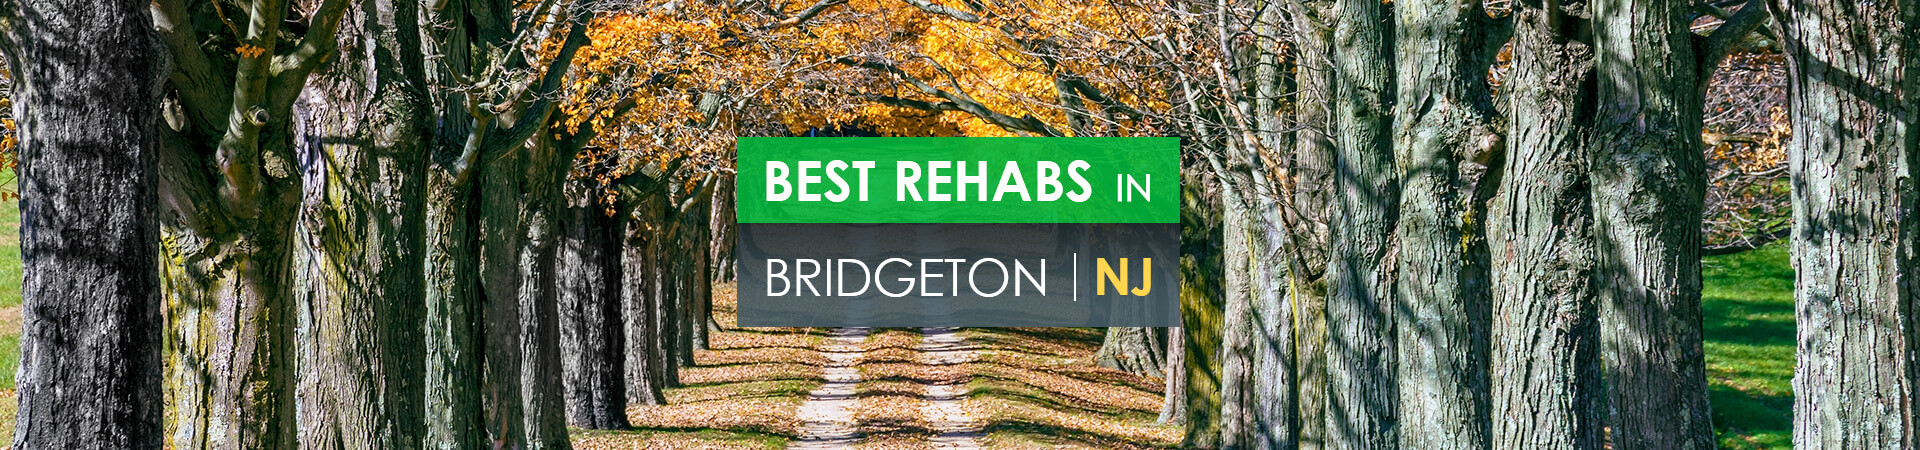 Best rehabs in Bridgeton, NJ